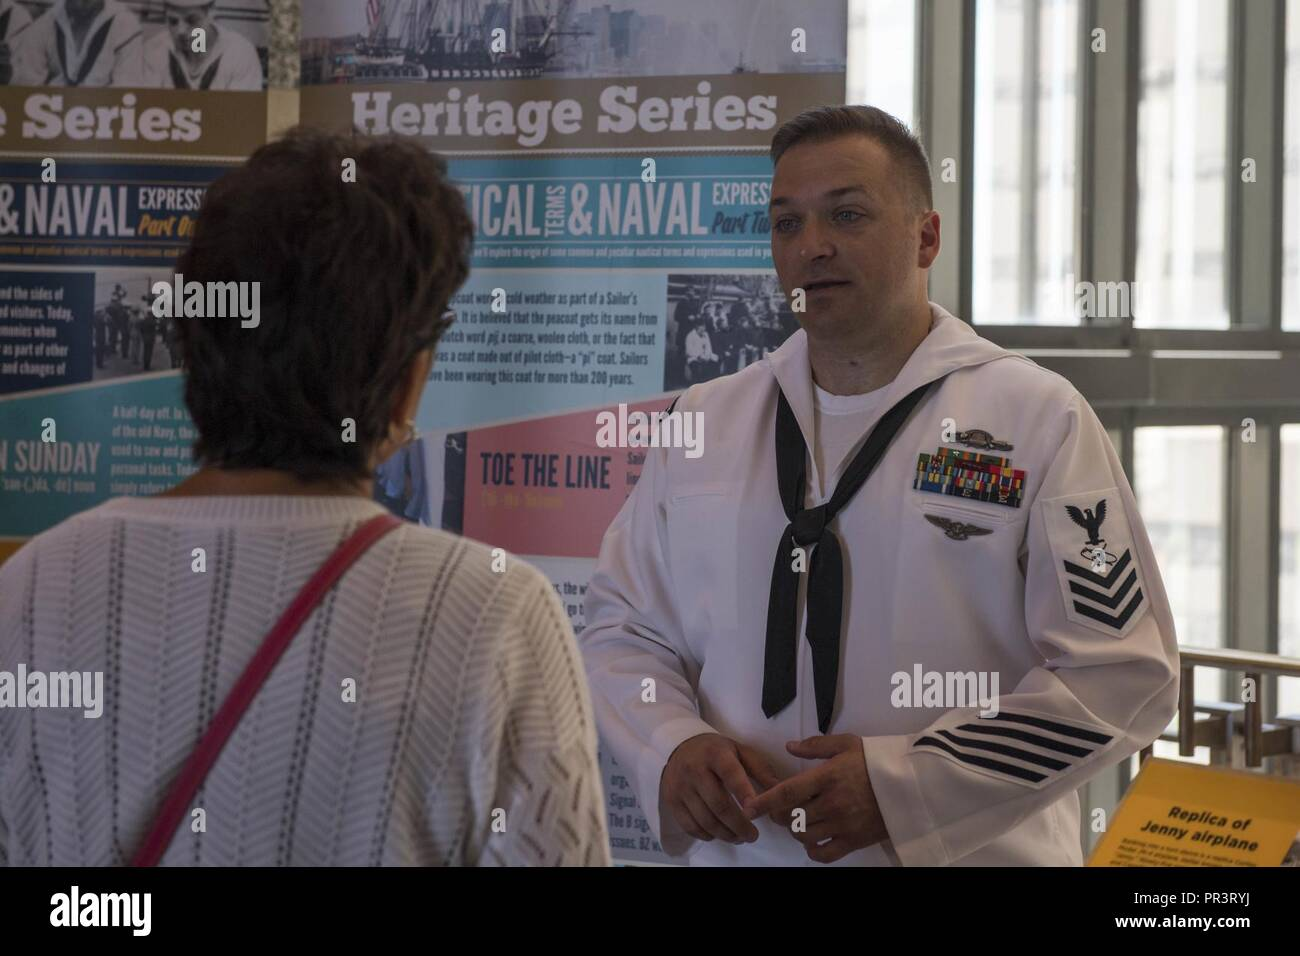 ST. PAUL, Minn. (July 22, 2017) – Mass Communication Specialist 1st Class Clifford L. H. Davis, assigned to the Naval History and Heritage Command, discusses Naval heritage and history with visitors of the Minnesota Historical Society during Minneapolis/St. Paul Navy Week. Navy Week programs serve as the Navy's principal outreach effort into areas of the country without a significant Navy presence, with 195 Navy Weeks held in 71 different U.S. cities. Stock Photo